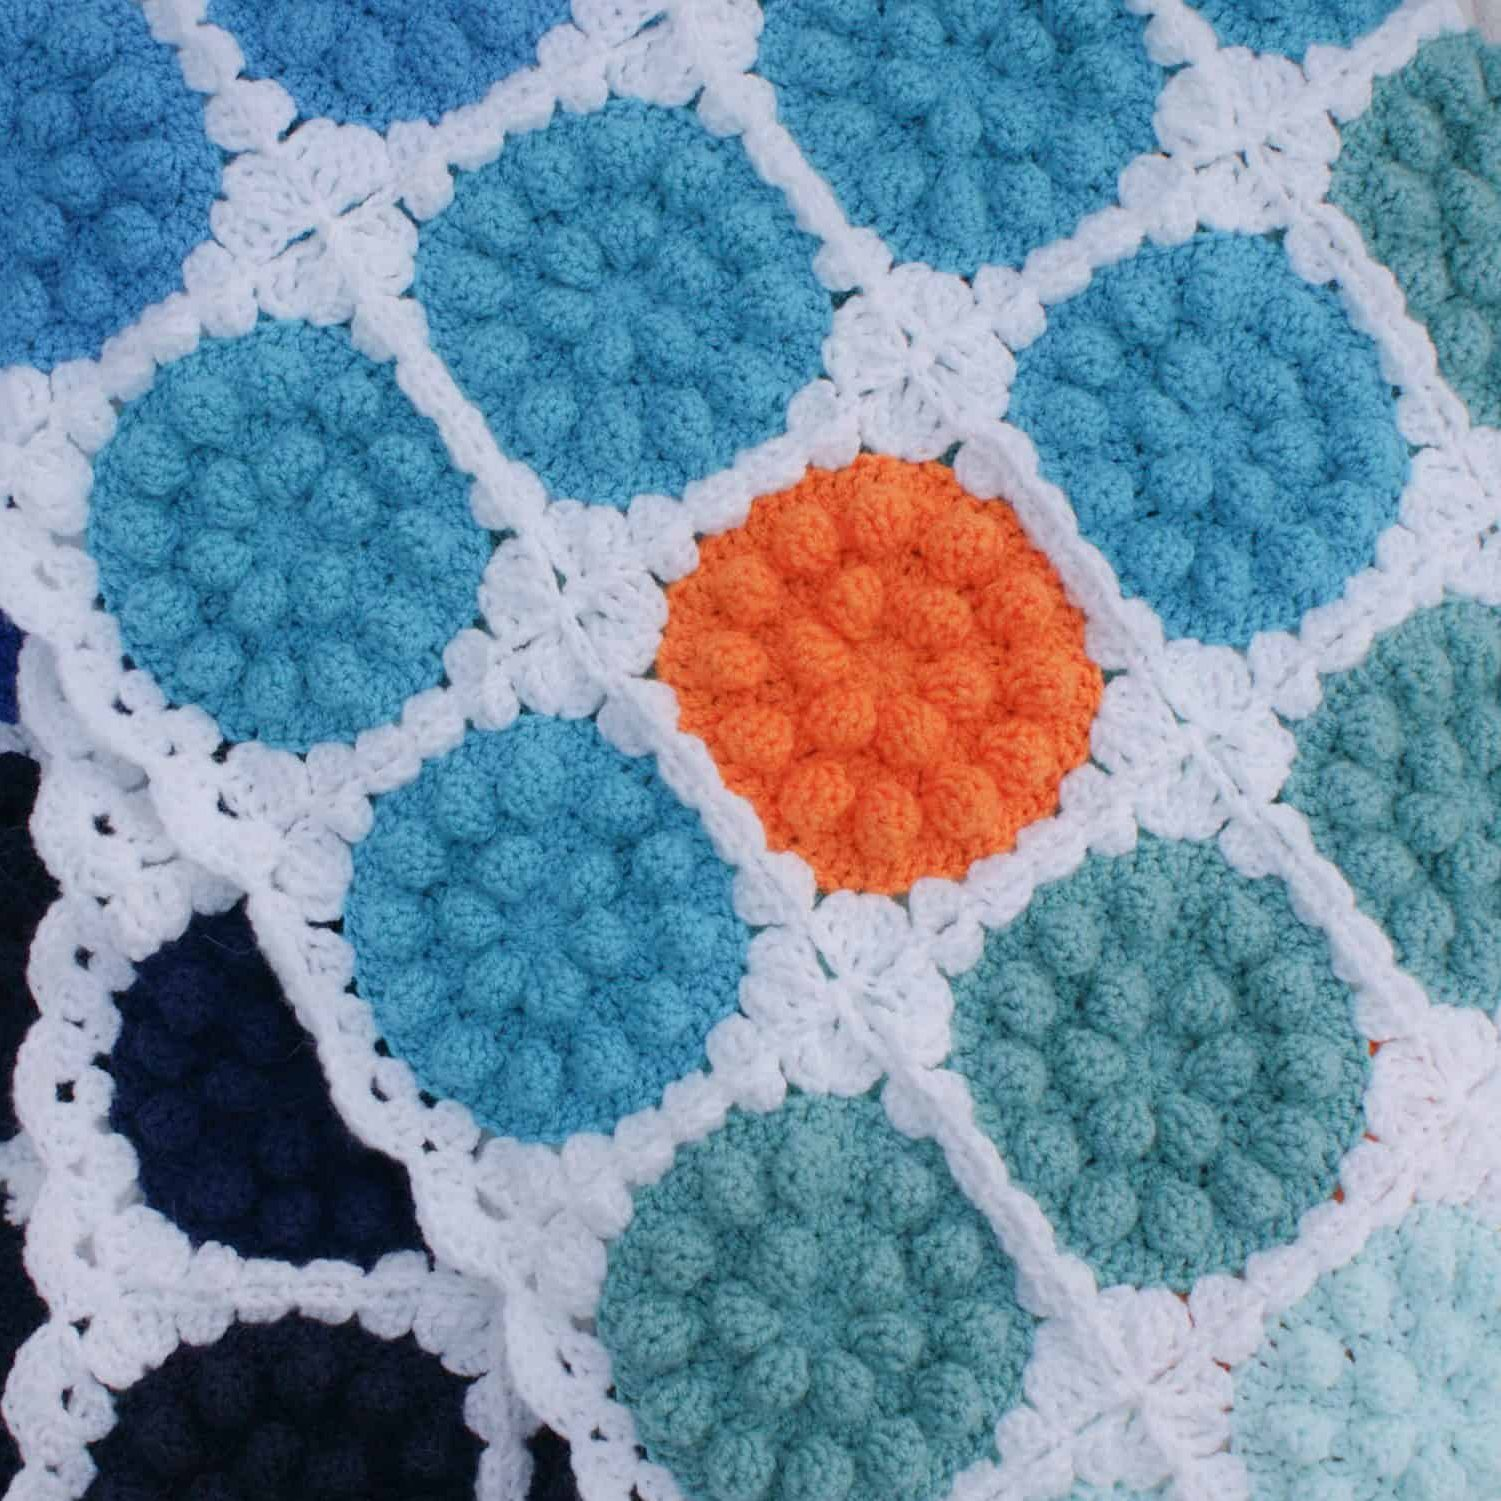 Bobble pop crochet blanket made from blue and orange bobbly circles on white boarder